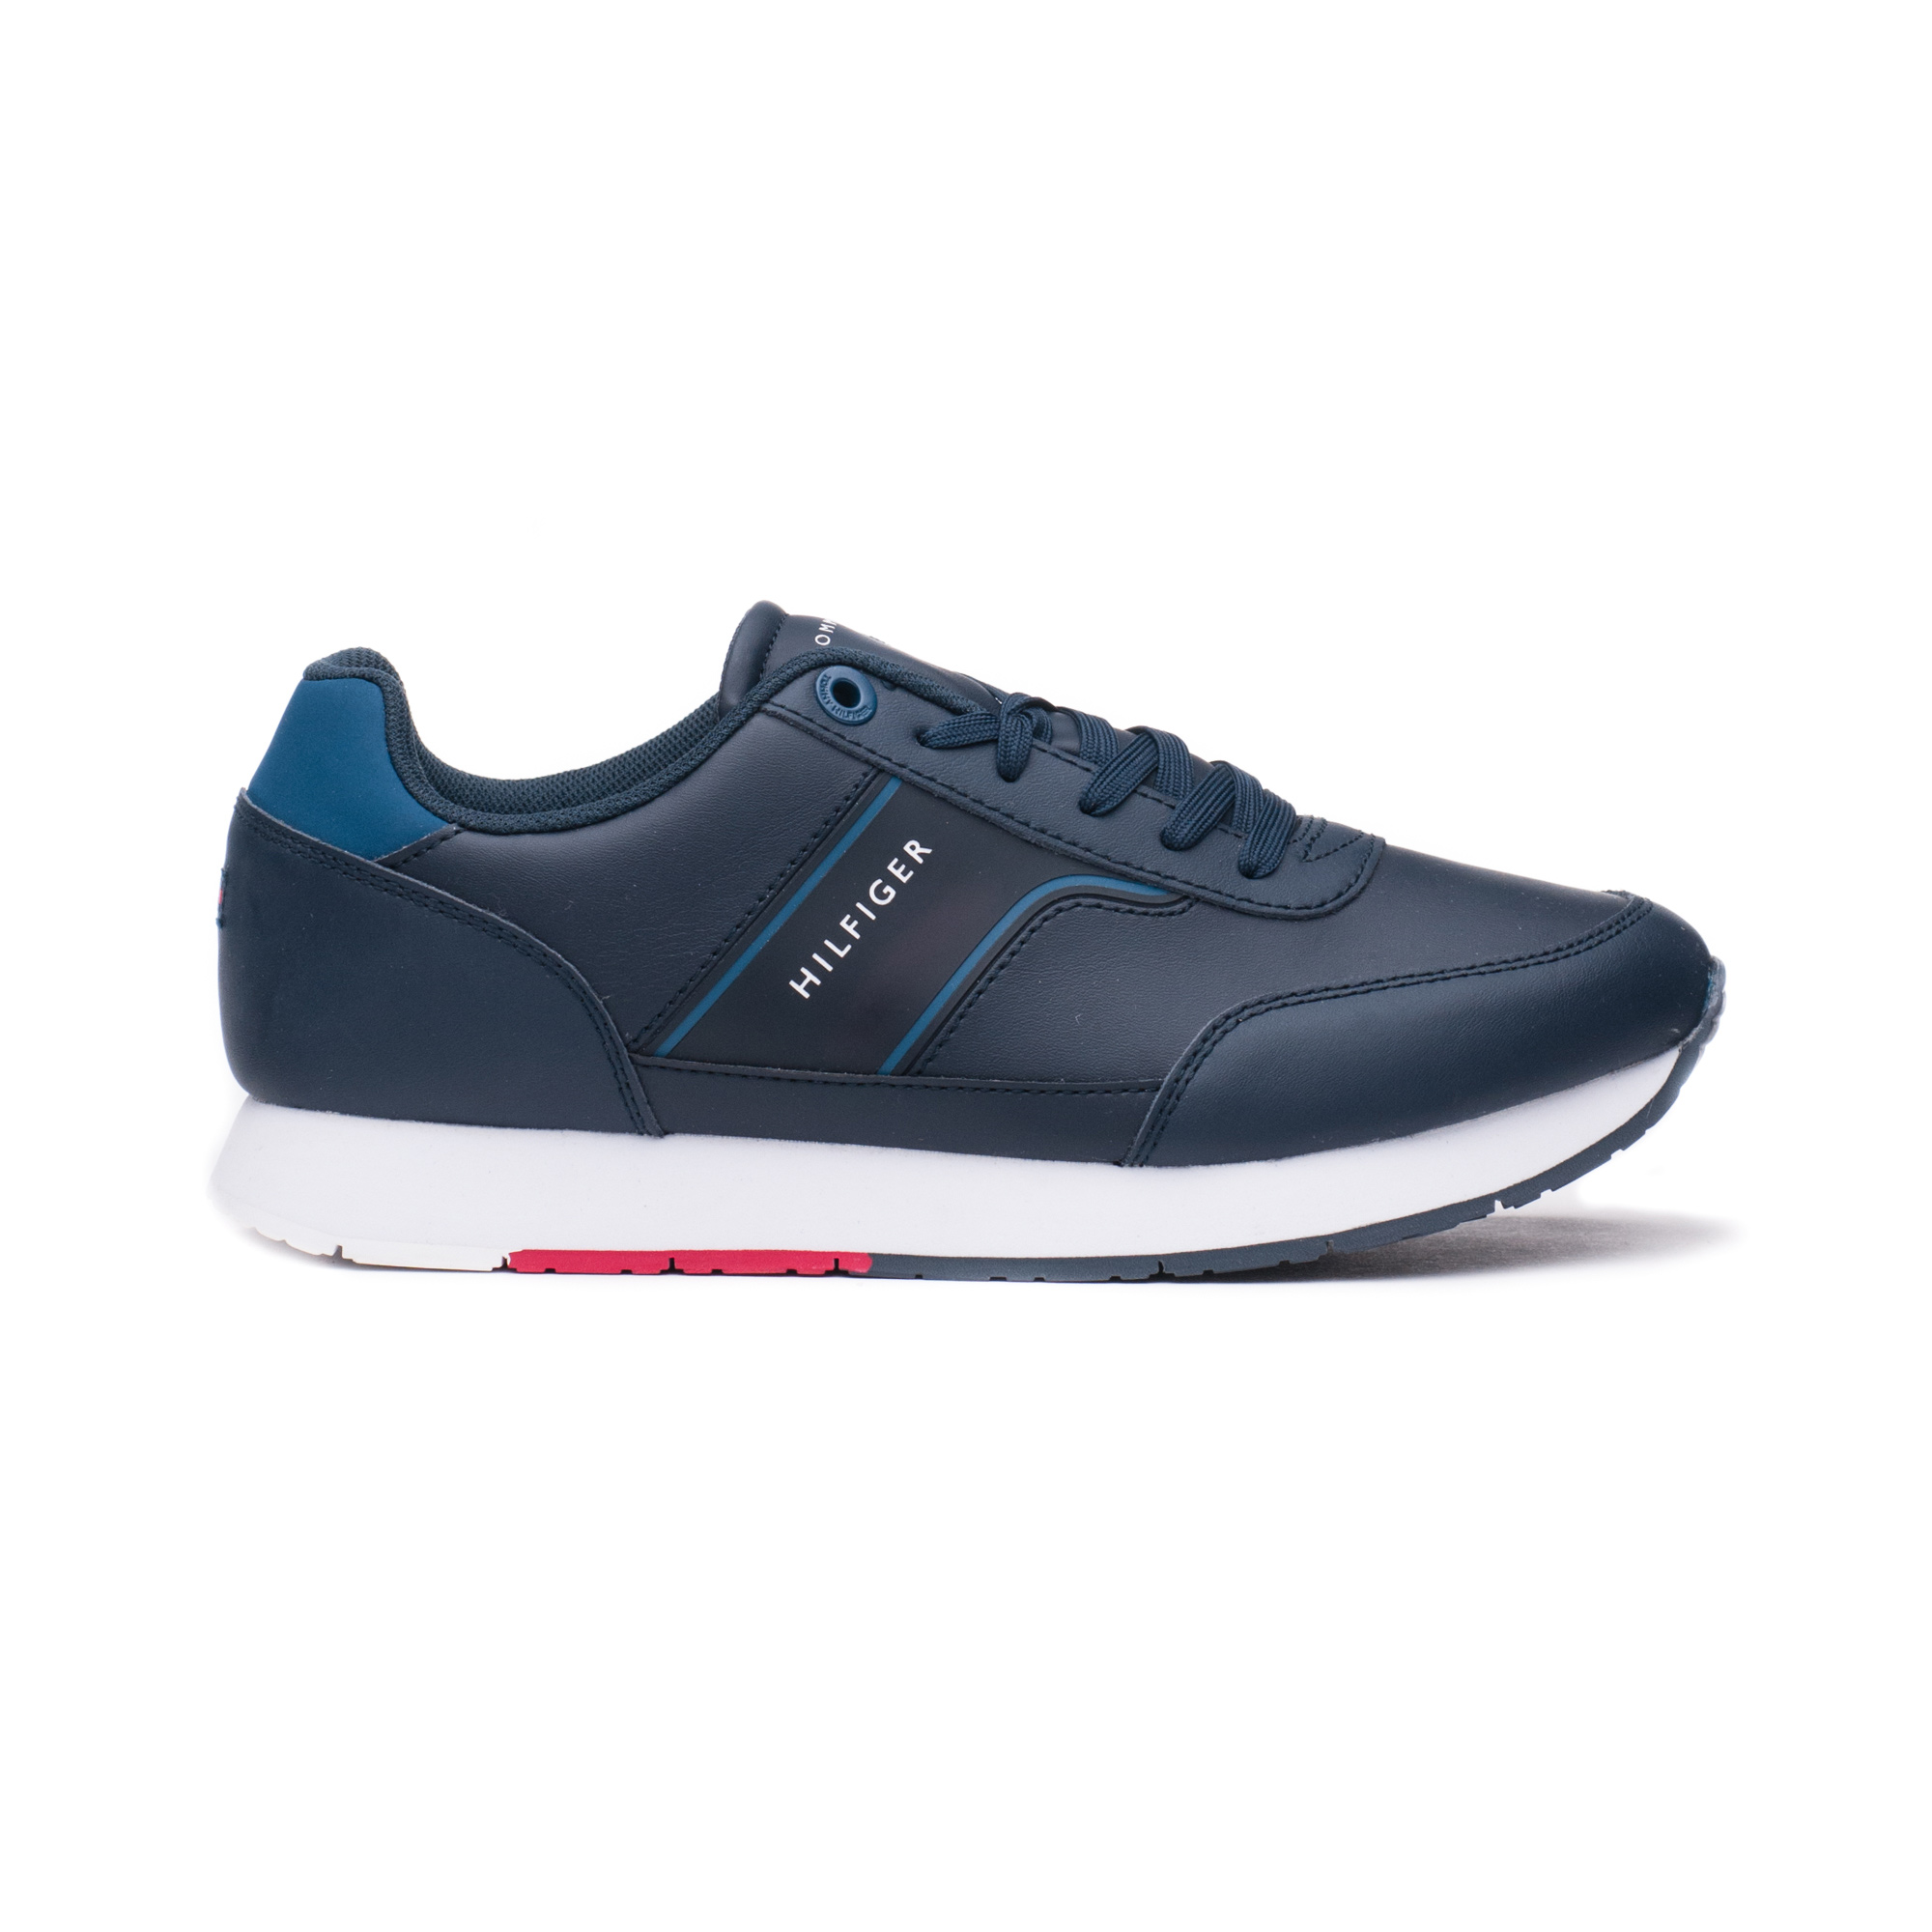 Кросівки чоловічі Tommy Hilfiger CORPORATE LEATHER RUNNER